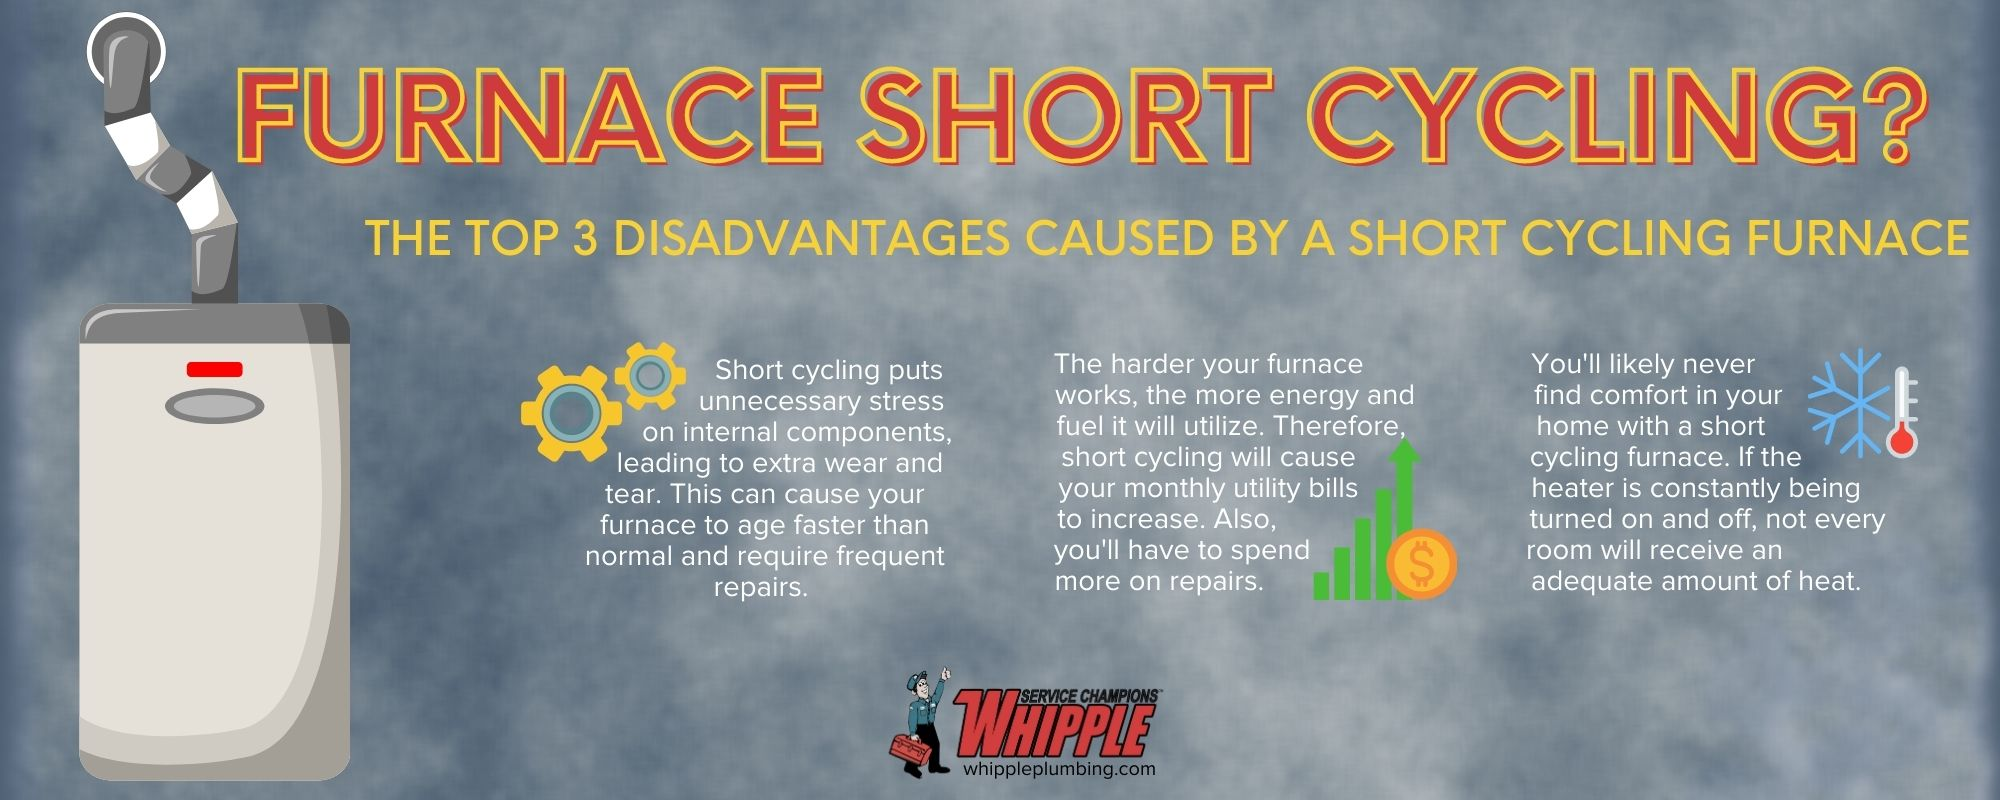 the top 3 disadvantages caused by a short cycling furnace